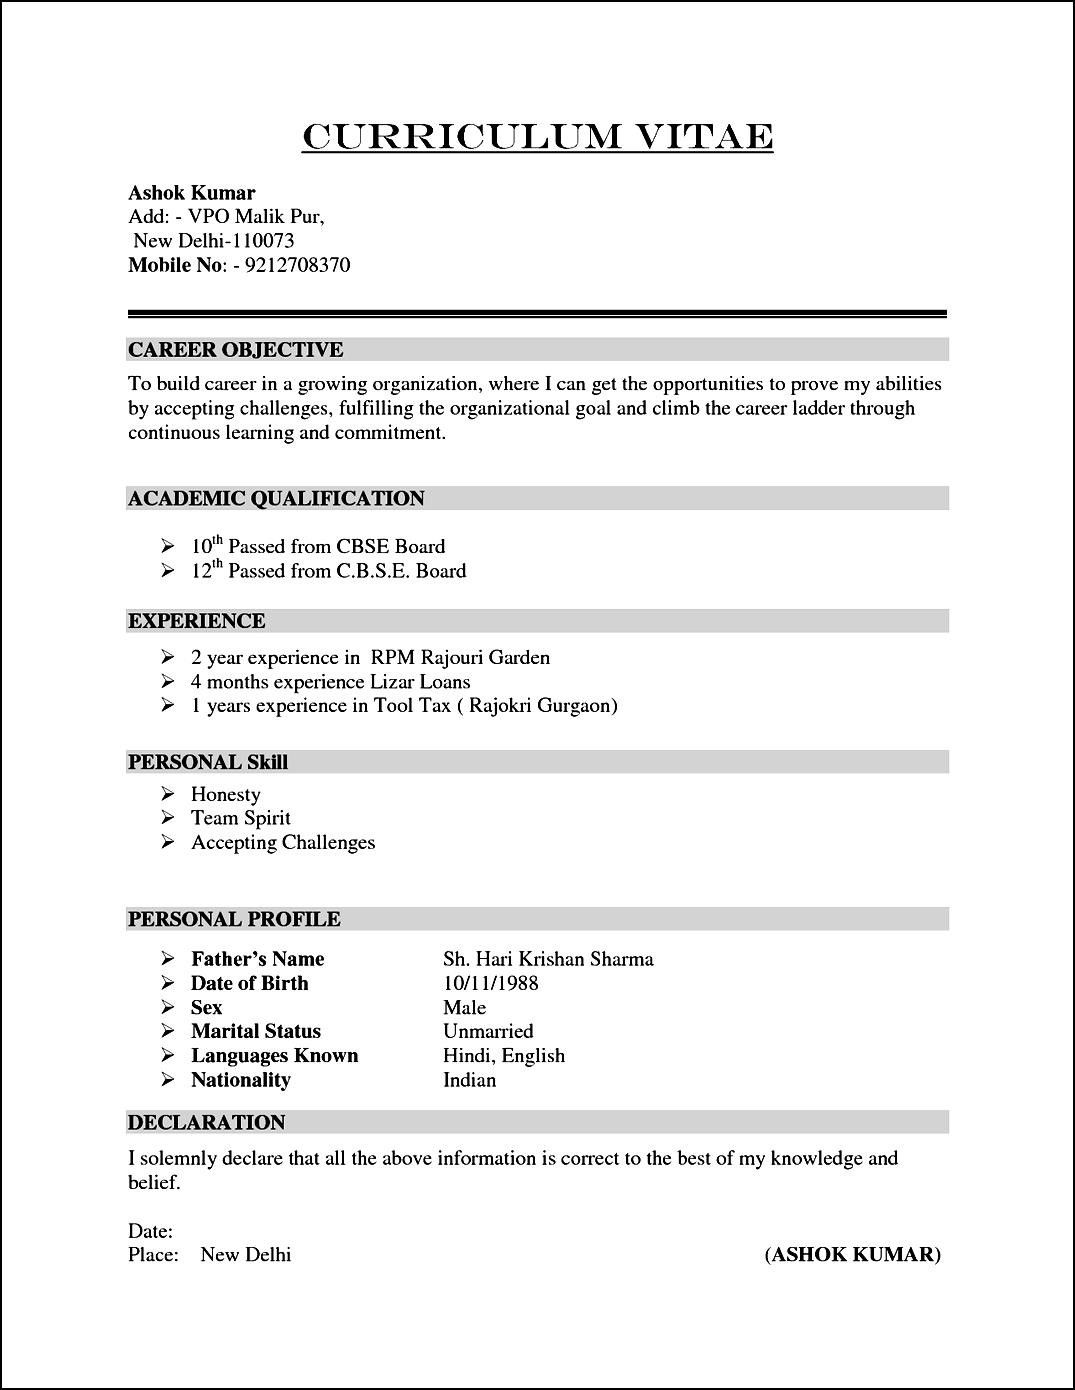 Sap Abap Resume Sample Gorgeous Resume Format For 4 Months Experience  Resume Format  Pinterest .